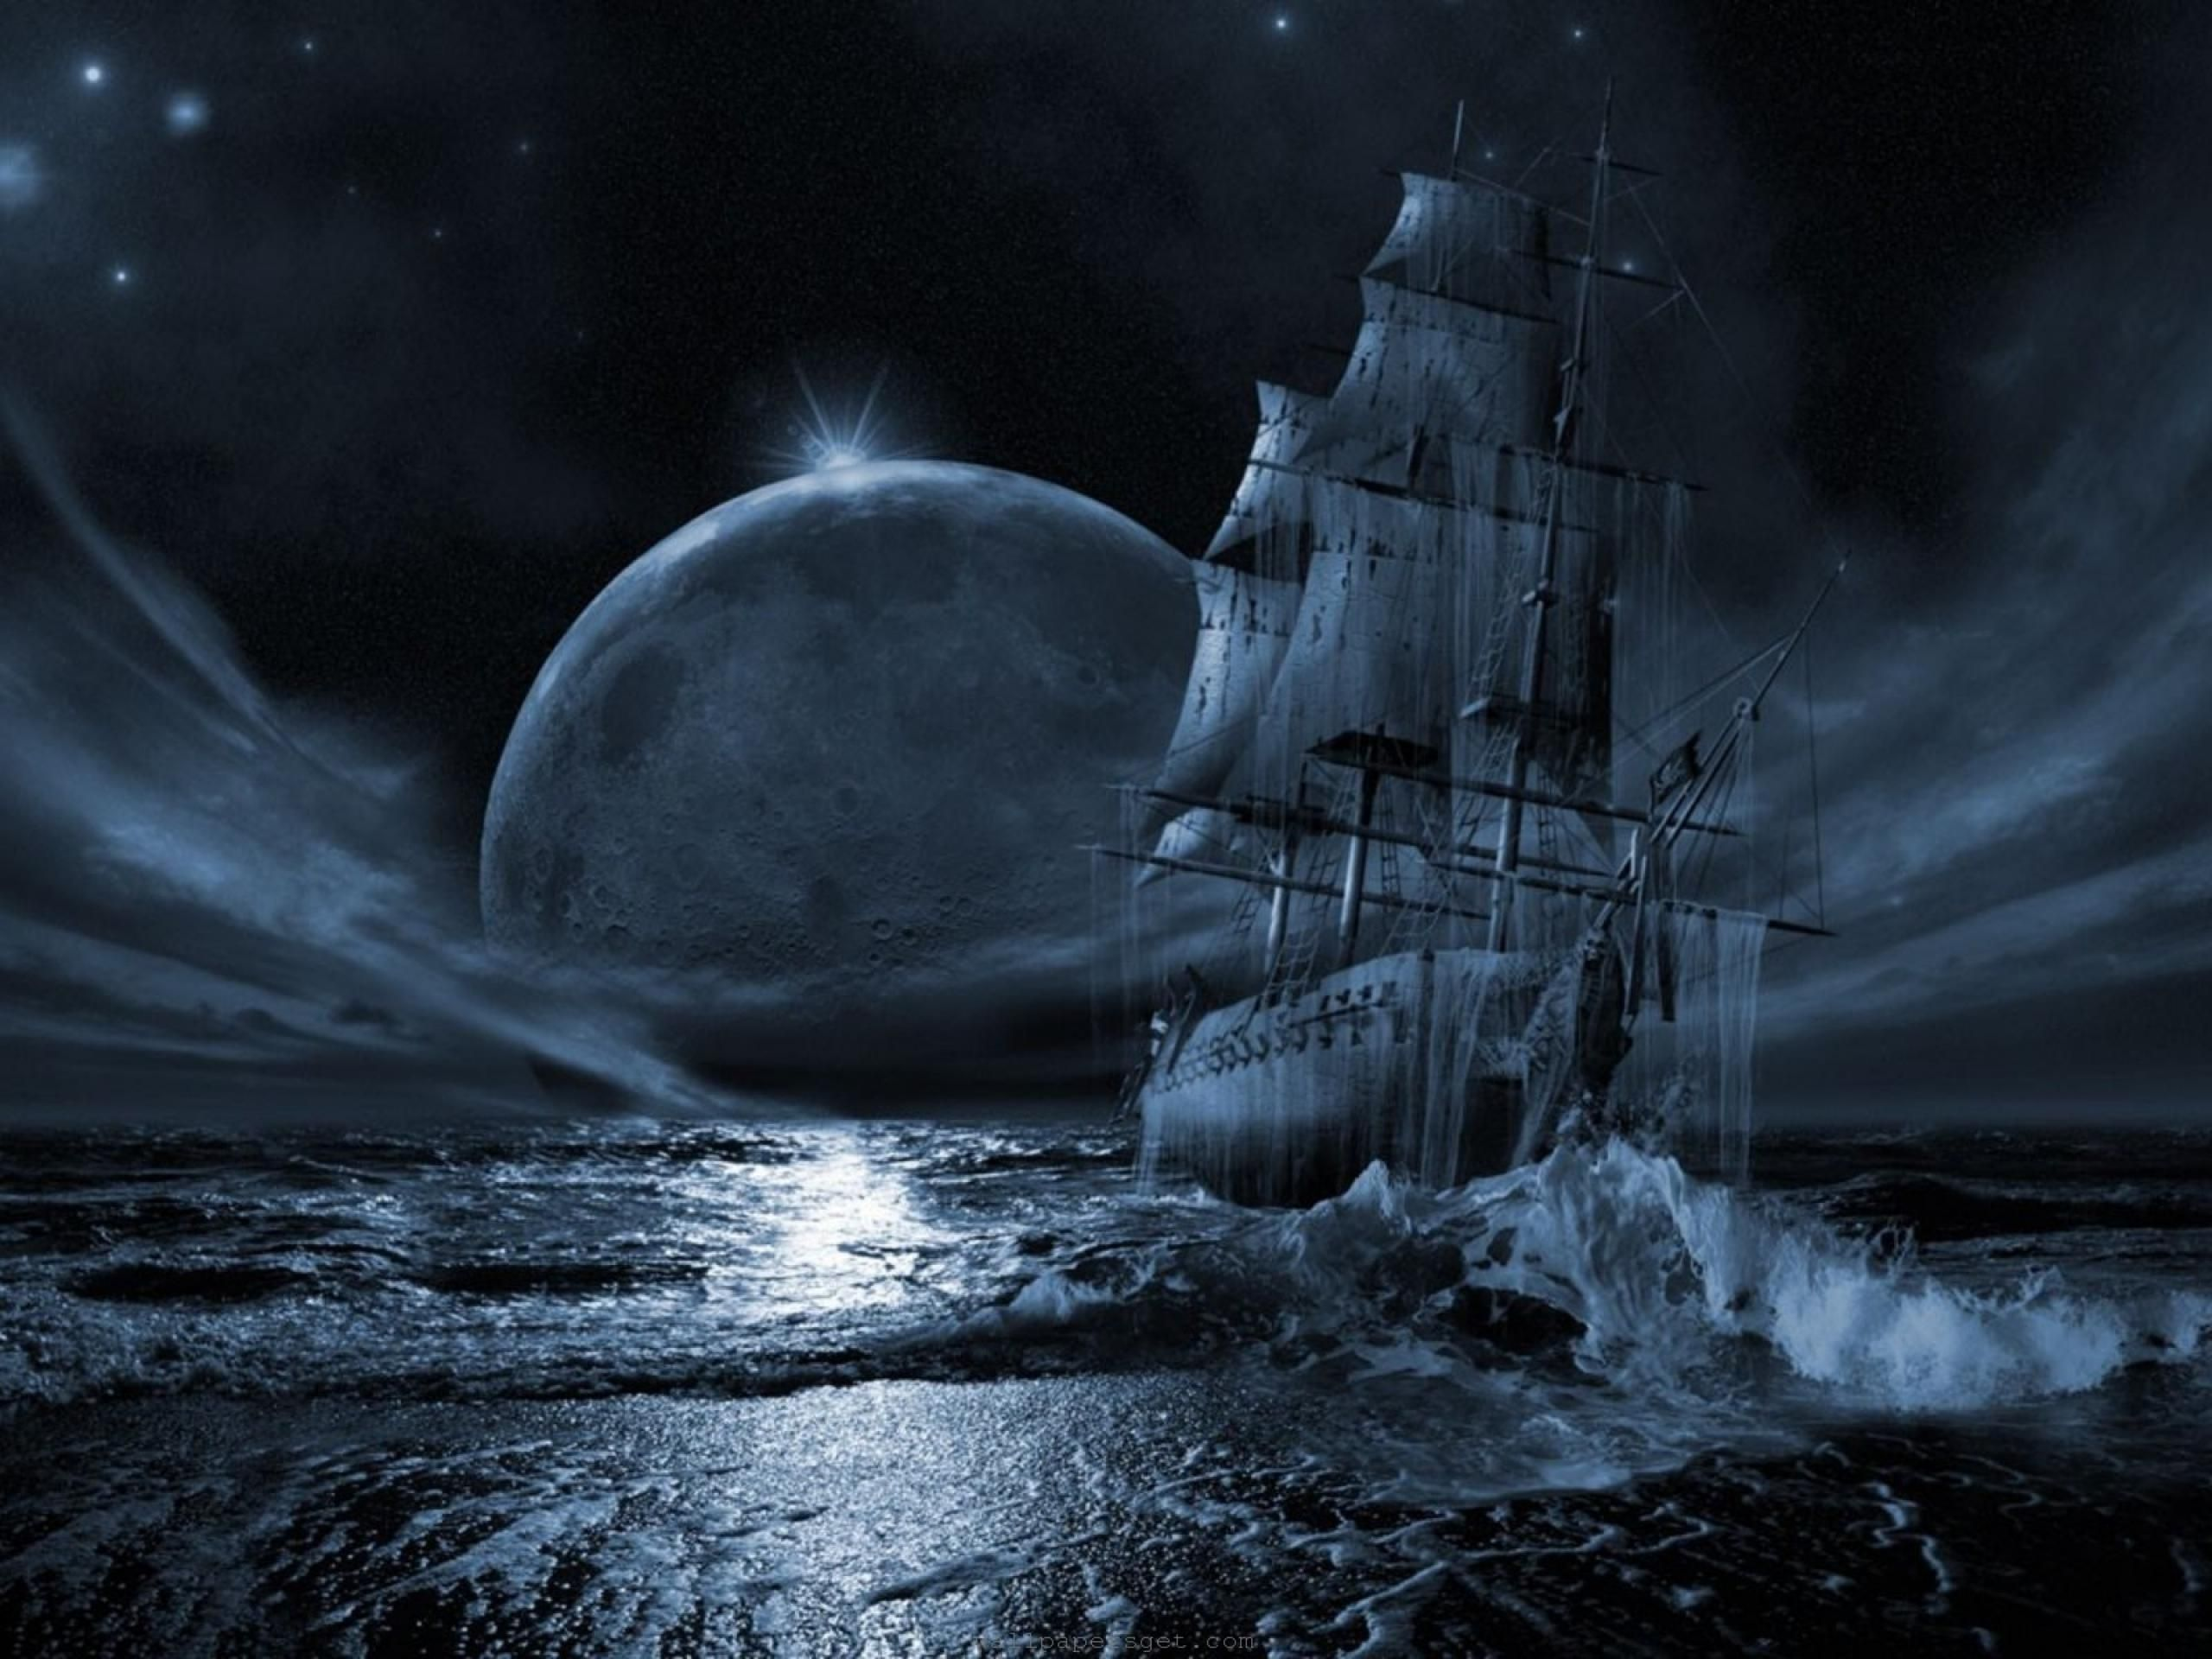 free computer desktop wallpaperghost ship series full moon rising mixed media fantasy art you might not be aware that ghost ships have existed for